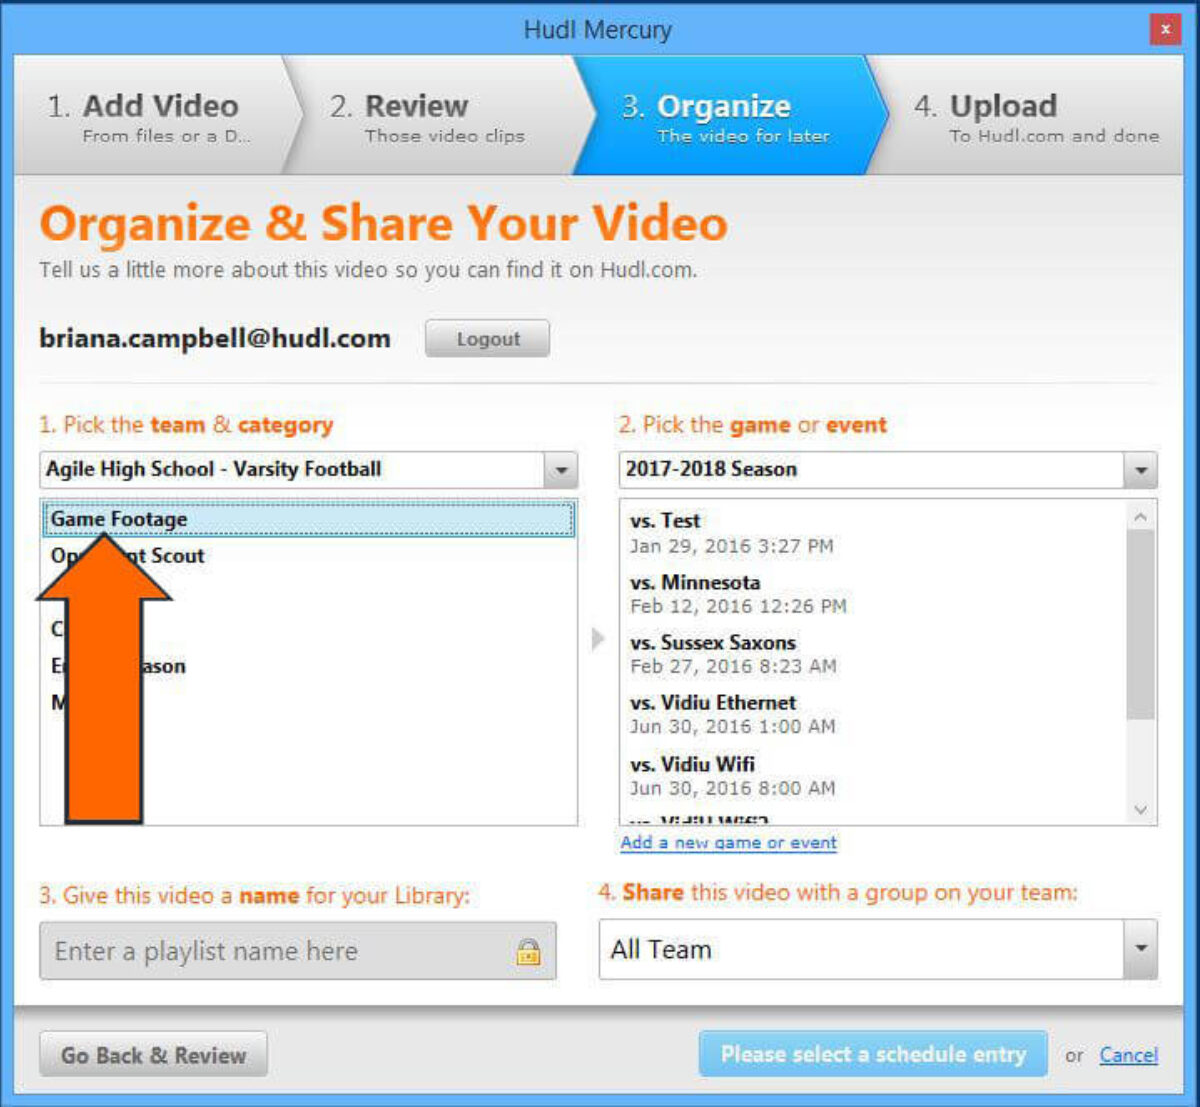 how to Download Hudl Mercury to Upload Video - Choose the cat­e­go­ry of video you're uploading.